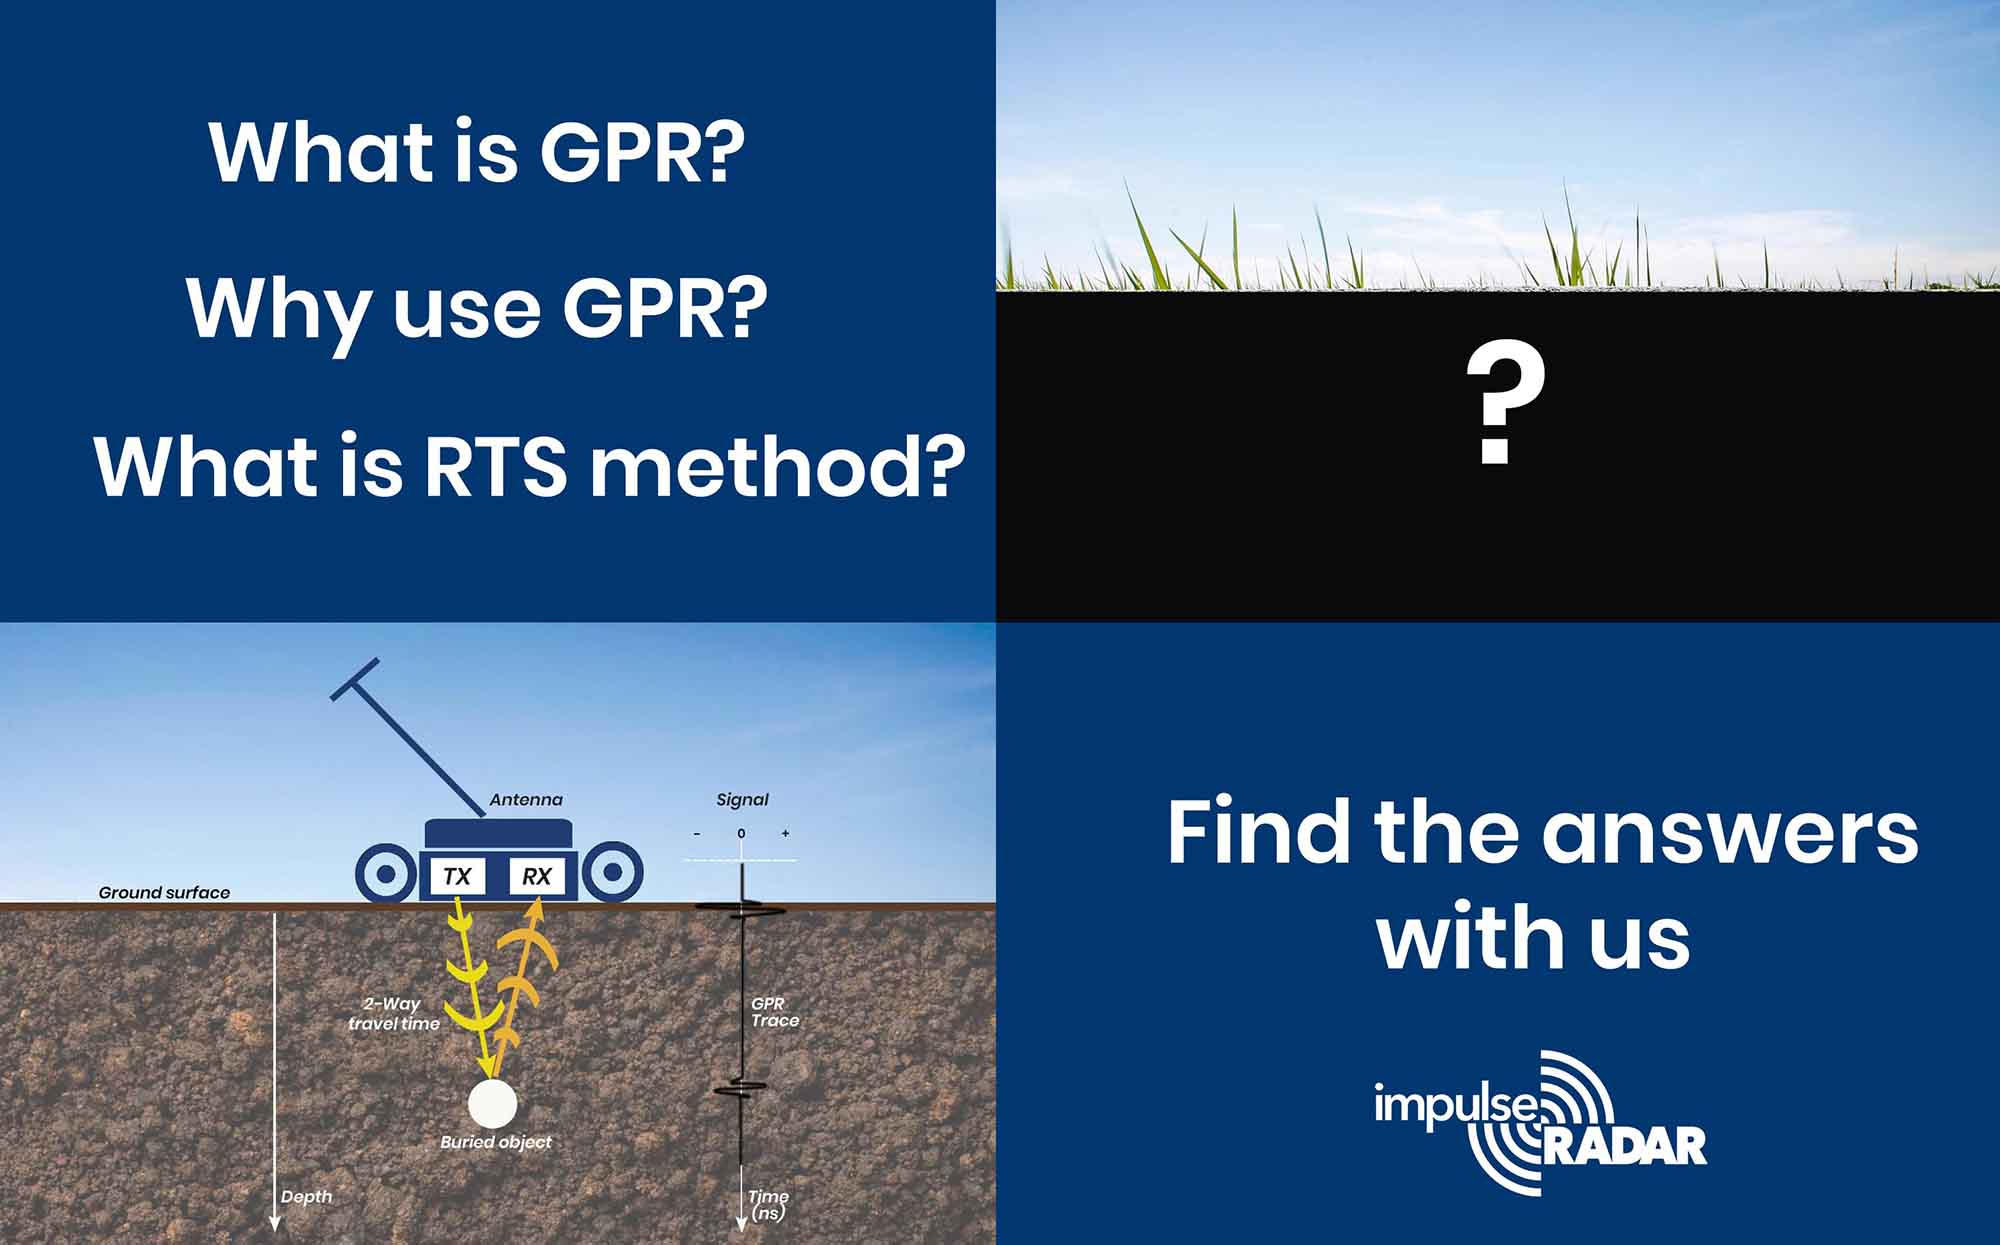 What is GPR? Why use GPR?